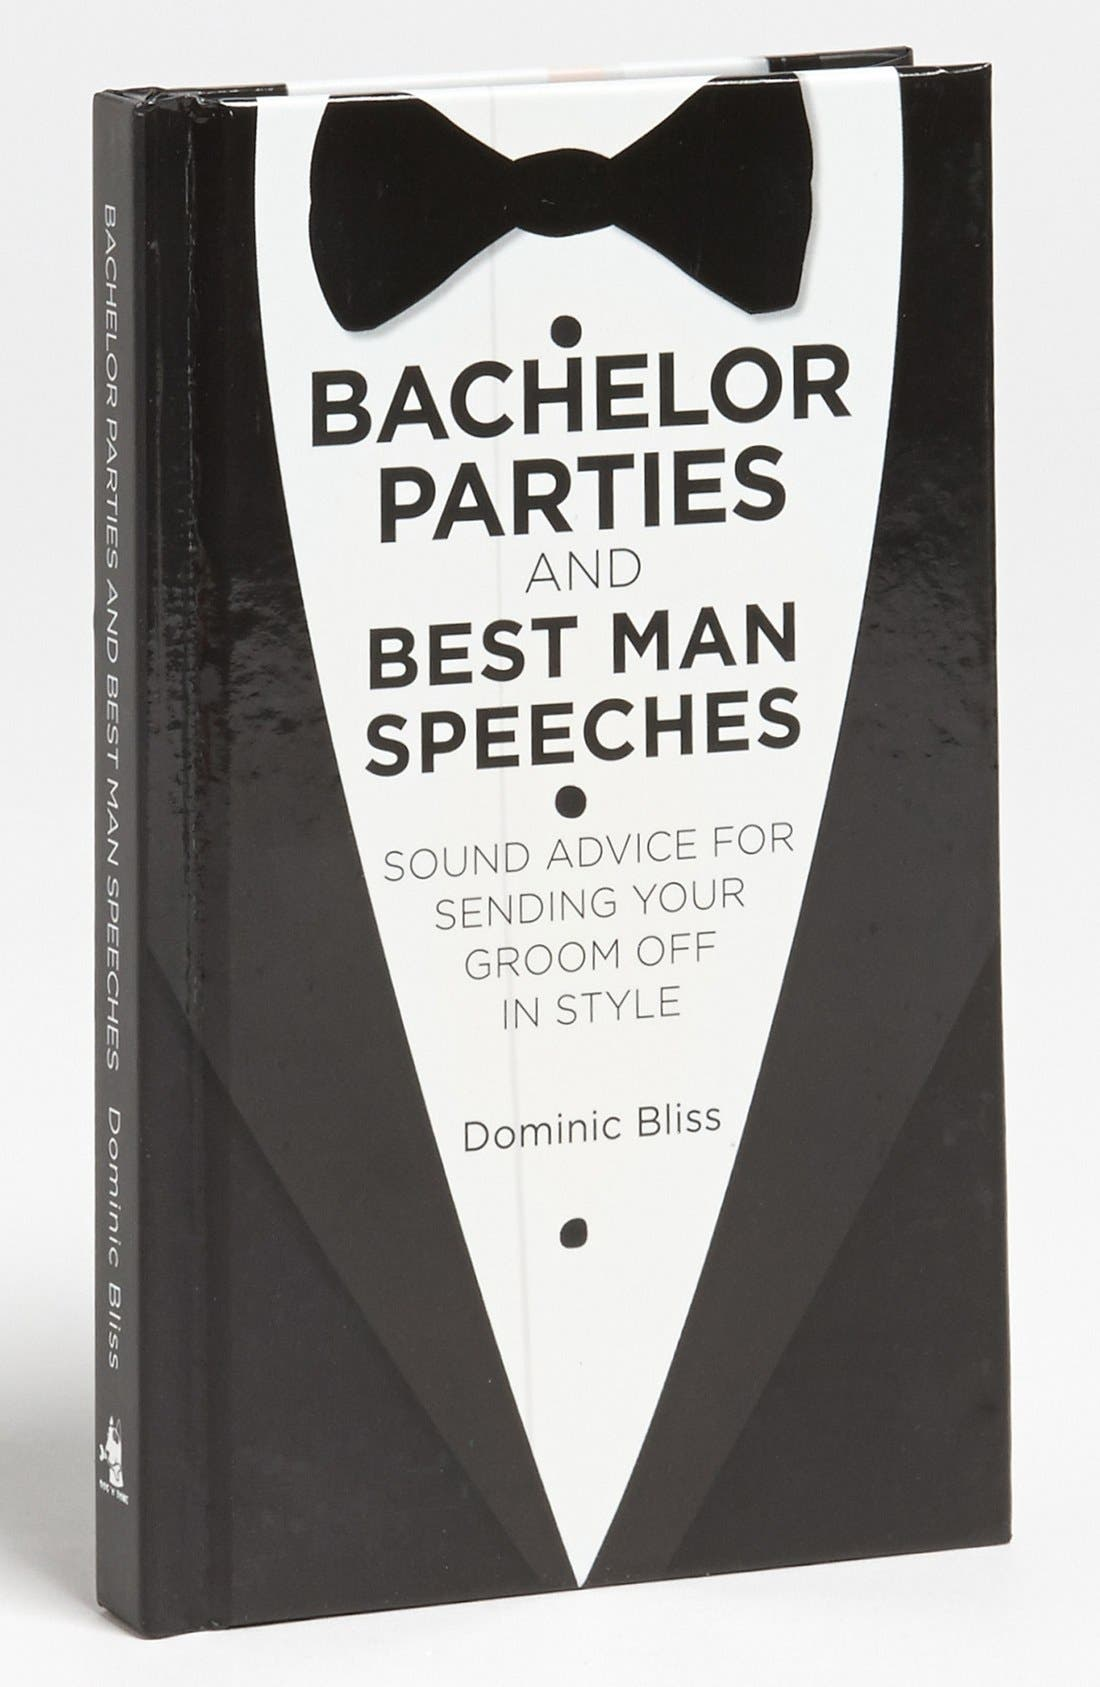 Alternate Image 1 Selected - 'Bachelor Parties & Best Man Speeches' Book